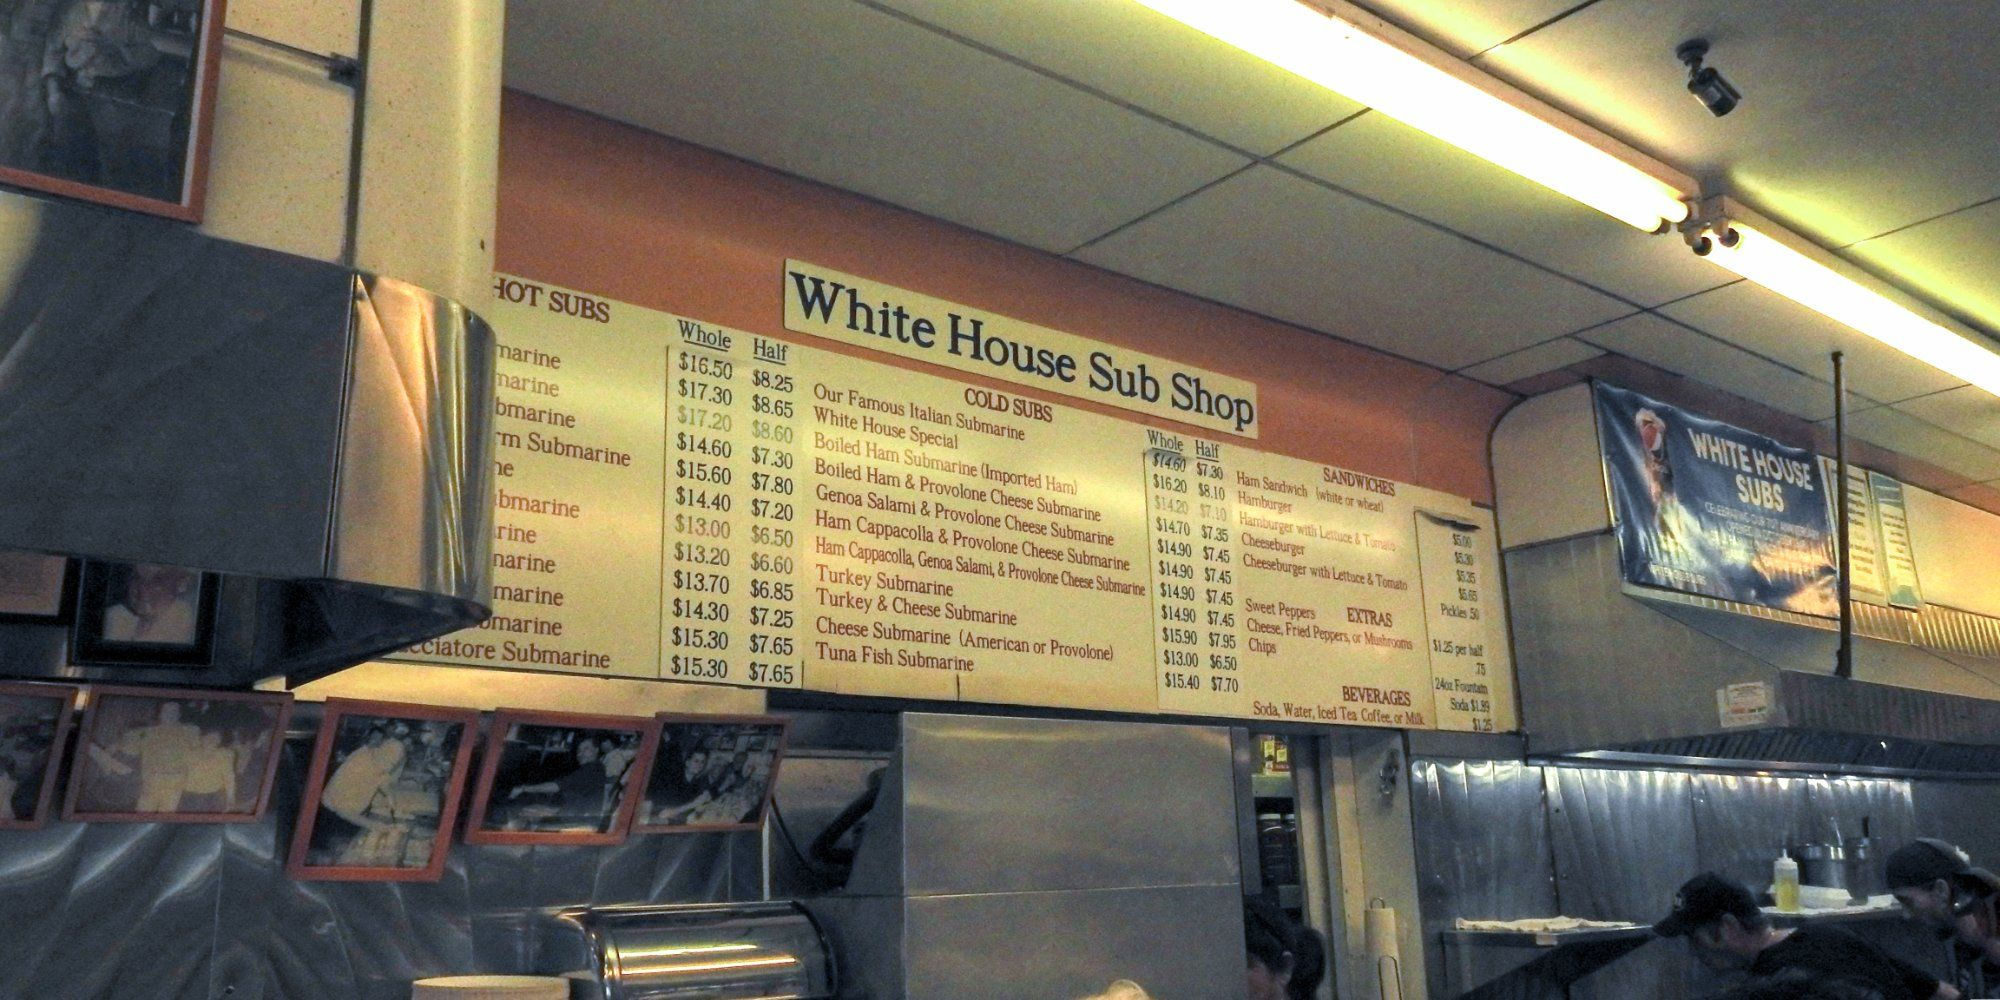 White House Sub Shop Atlantic City 2301 Arctic Ave Menu Prices Restaurant Reviews Tripadvisor Atlantic City White House Restaurant Review